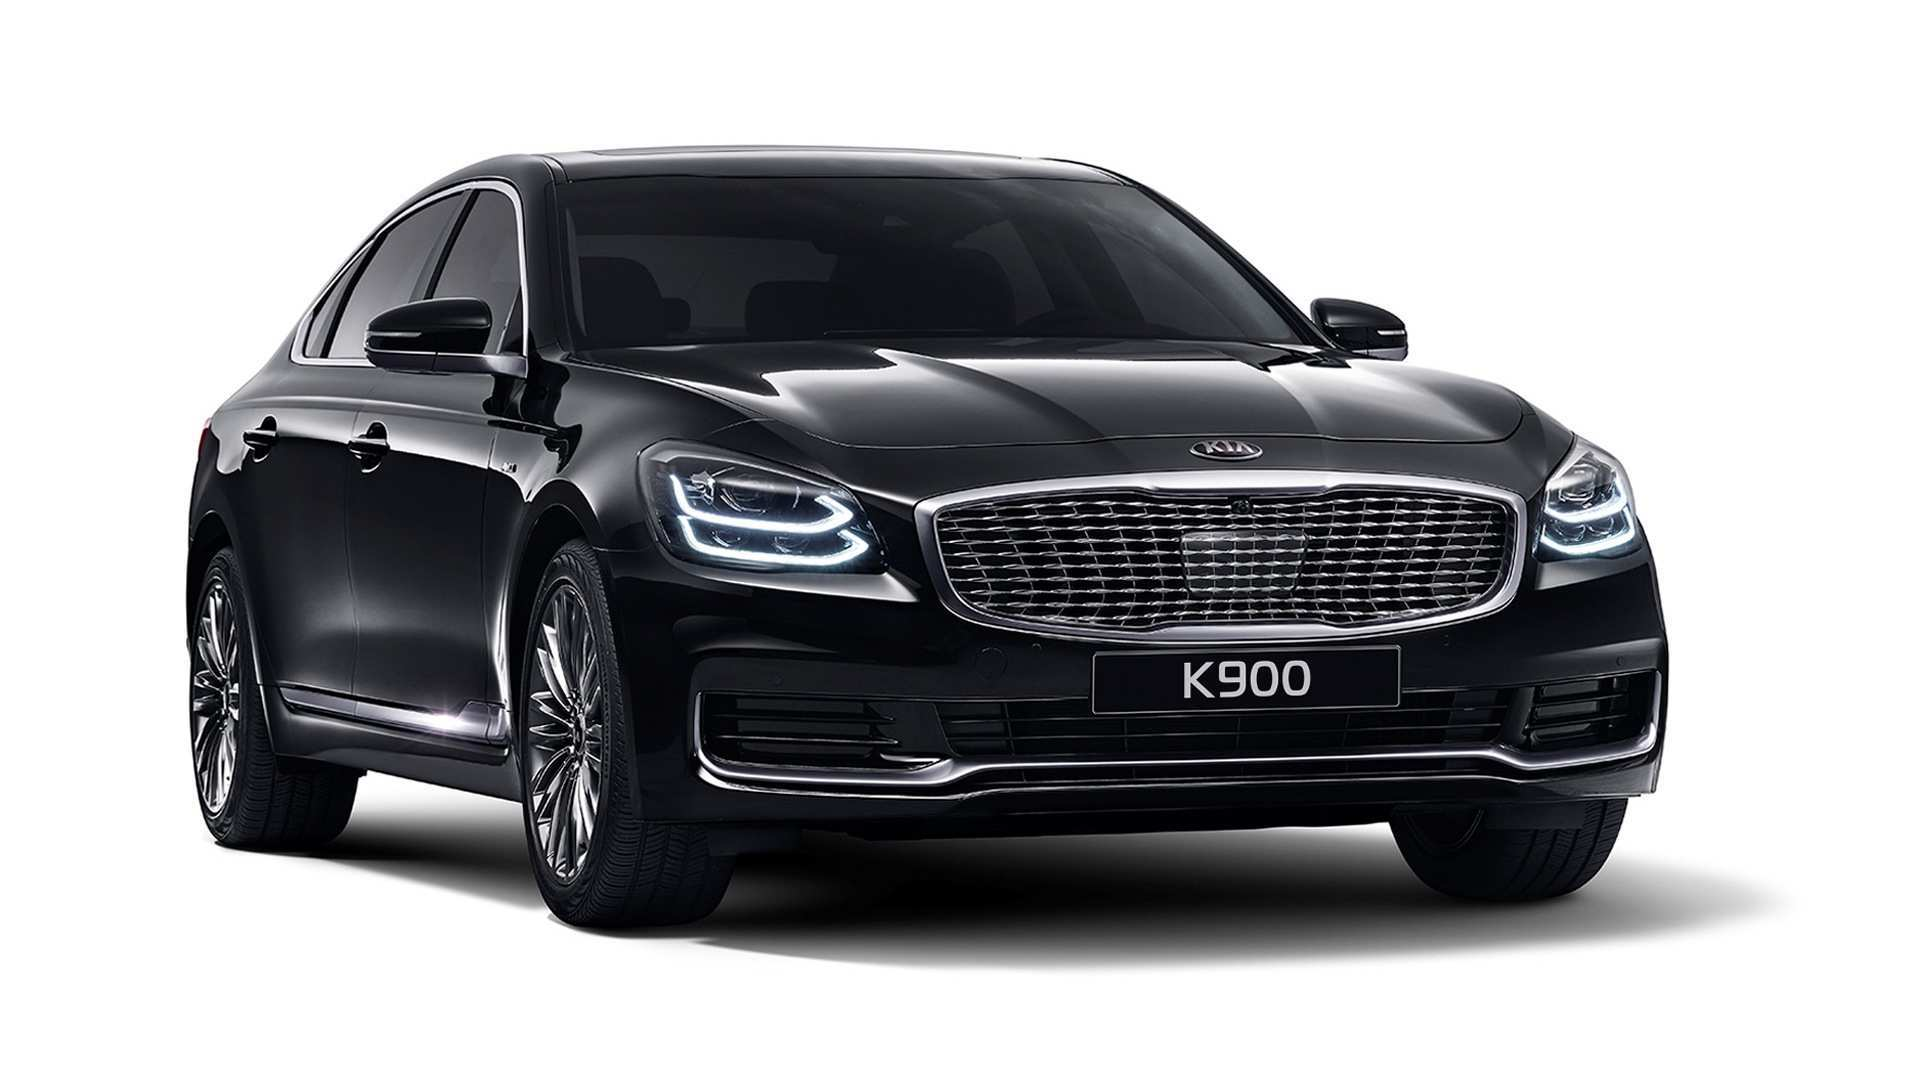 81 Gallery of K9 Kia 2019 Price Release Ratings with K9 Kia 2019 Price Release